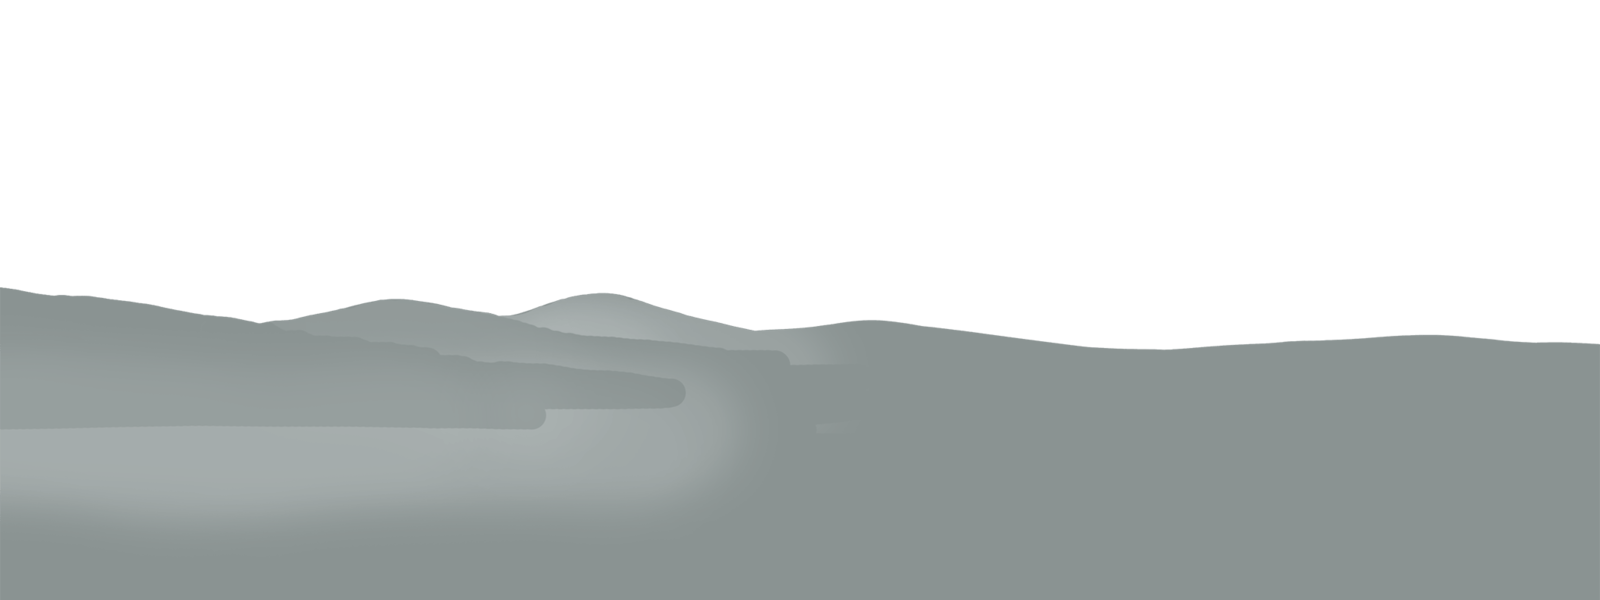 illustration of mountains in the distance